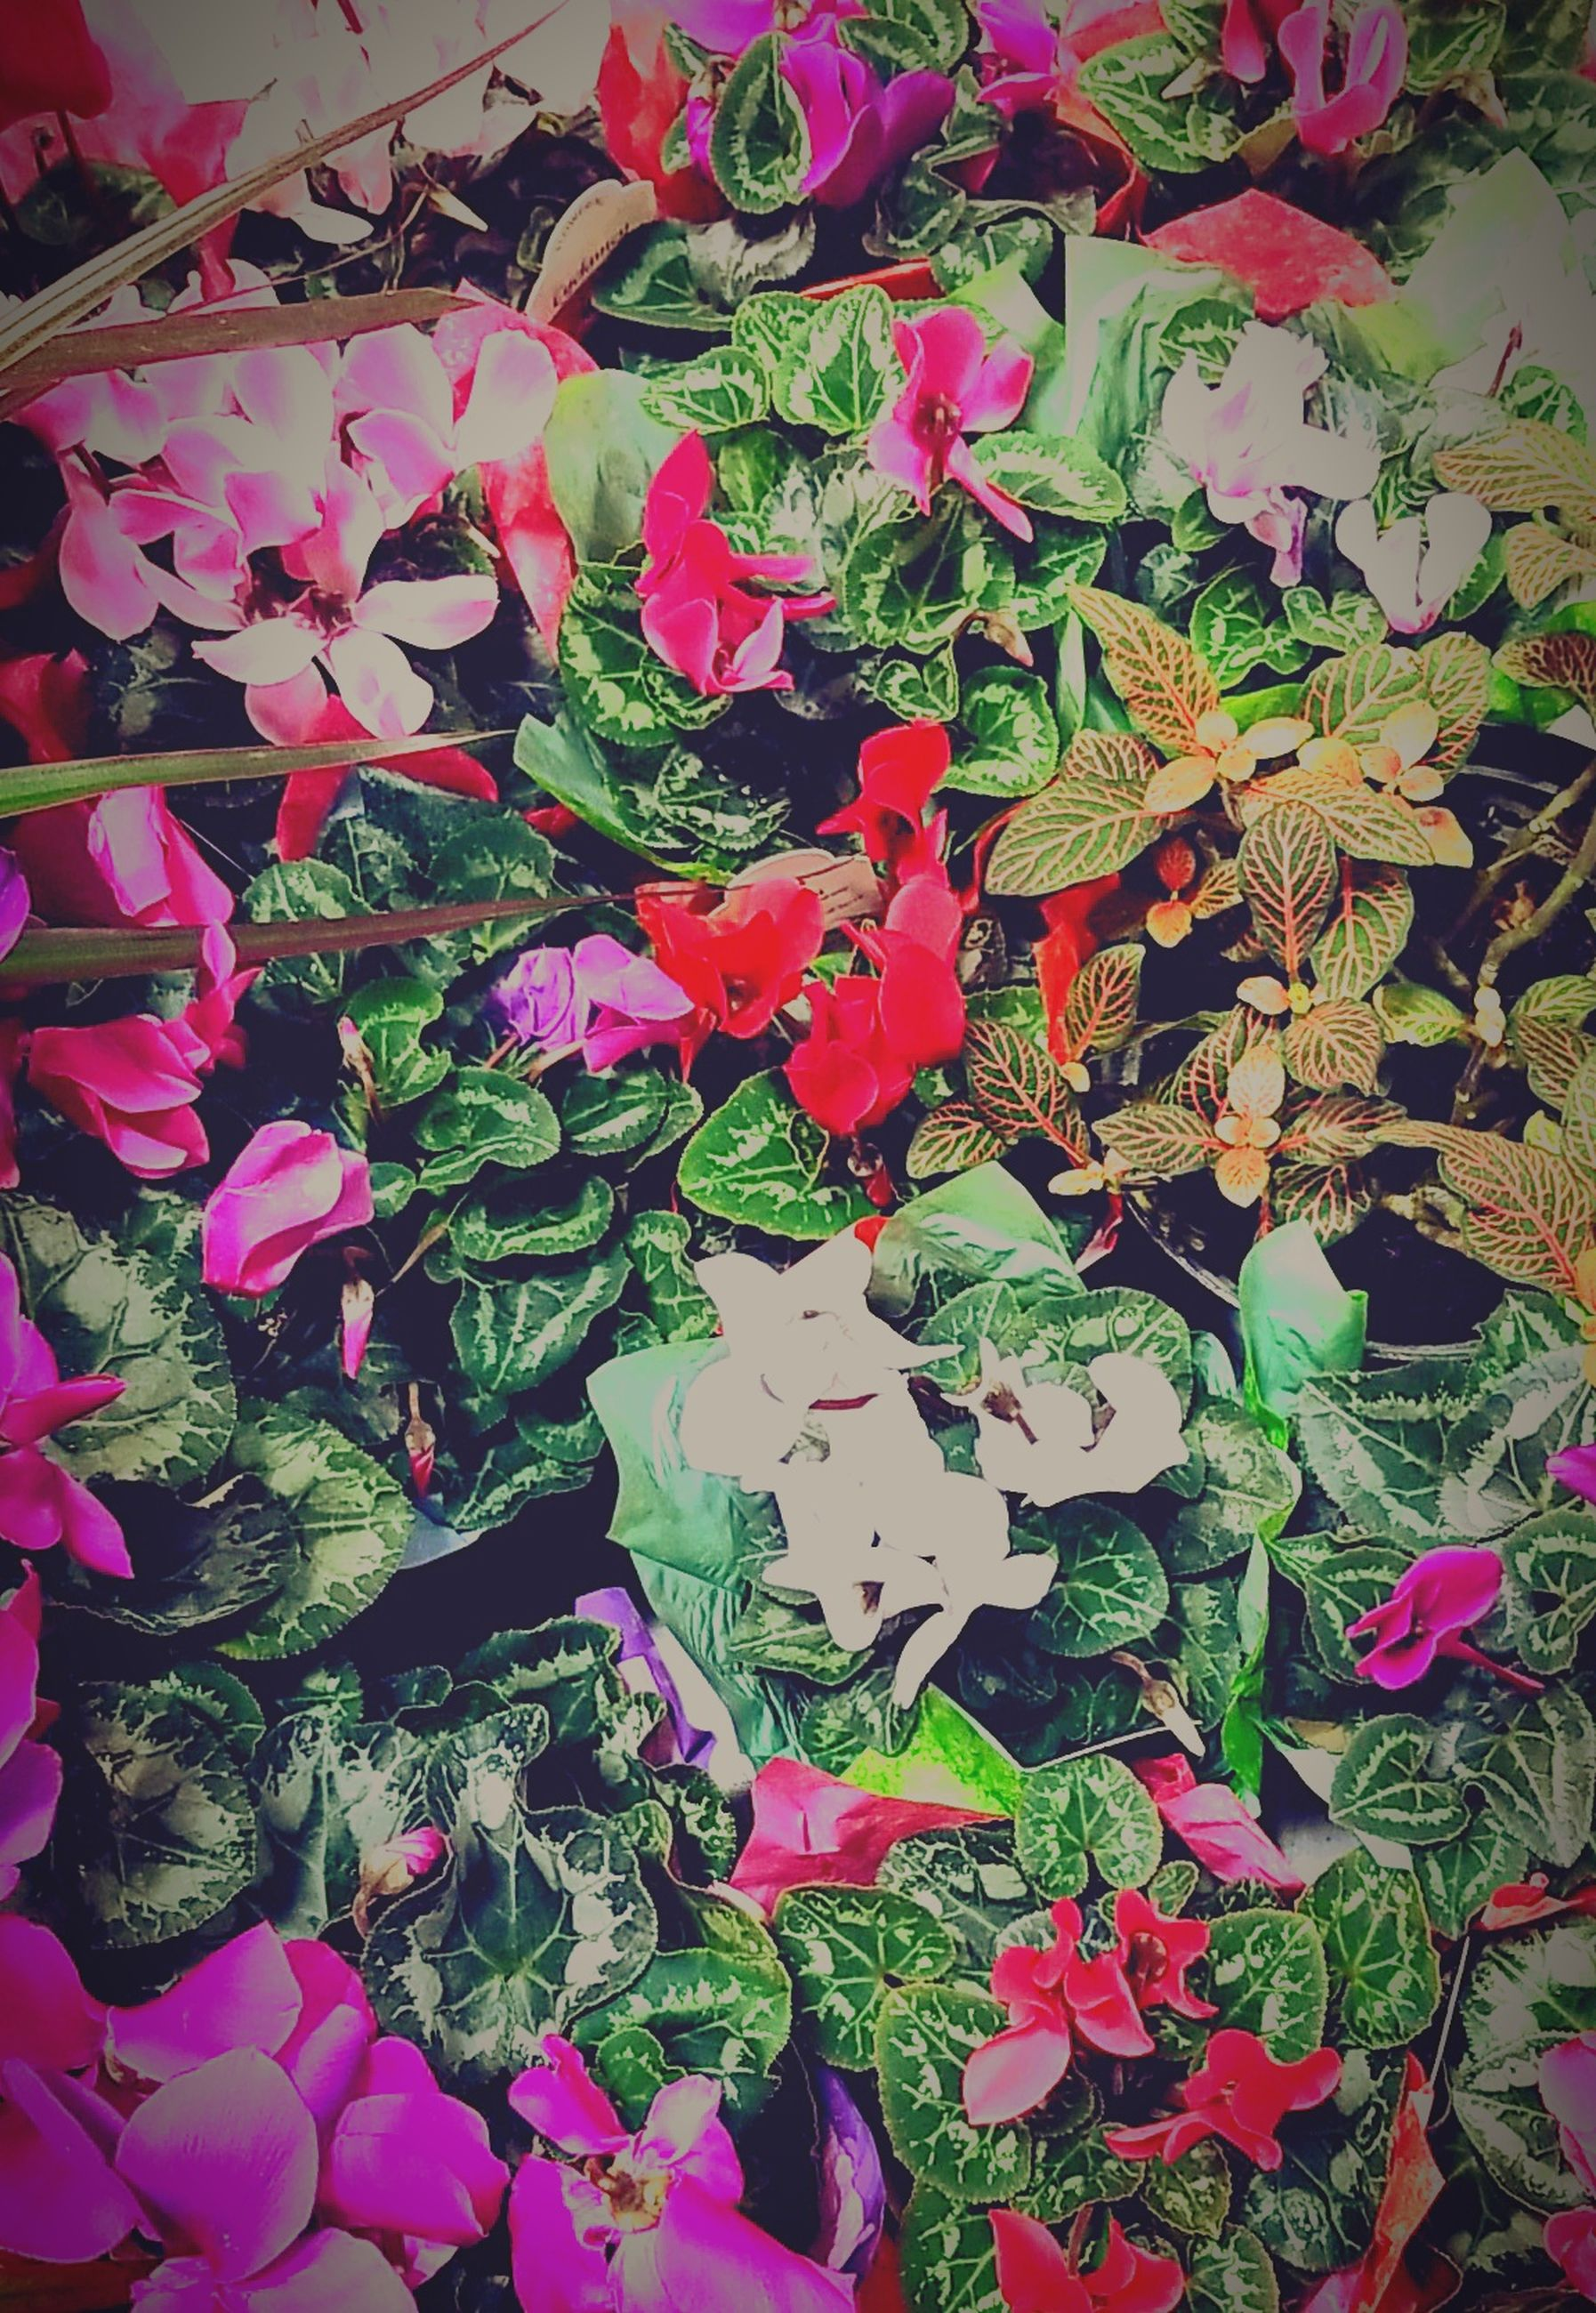 plant, beauty in nature, flower, full frame, pink color, flowering plant, multi colored, no people, nature, backgrounds, high angle view, leaf, plant part, day, close-up, freshness, growth, outdoors, petal, vulnerability, flower head, bouquet, bunch of flowers, flower arrangement